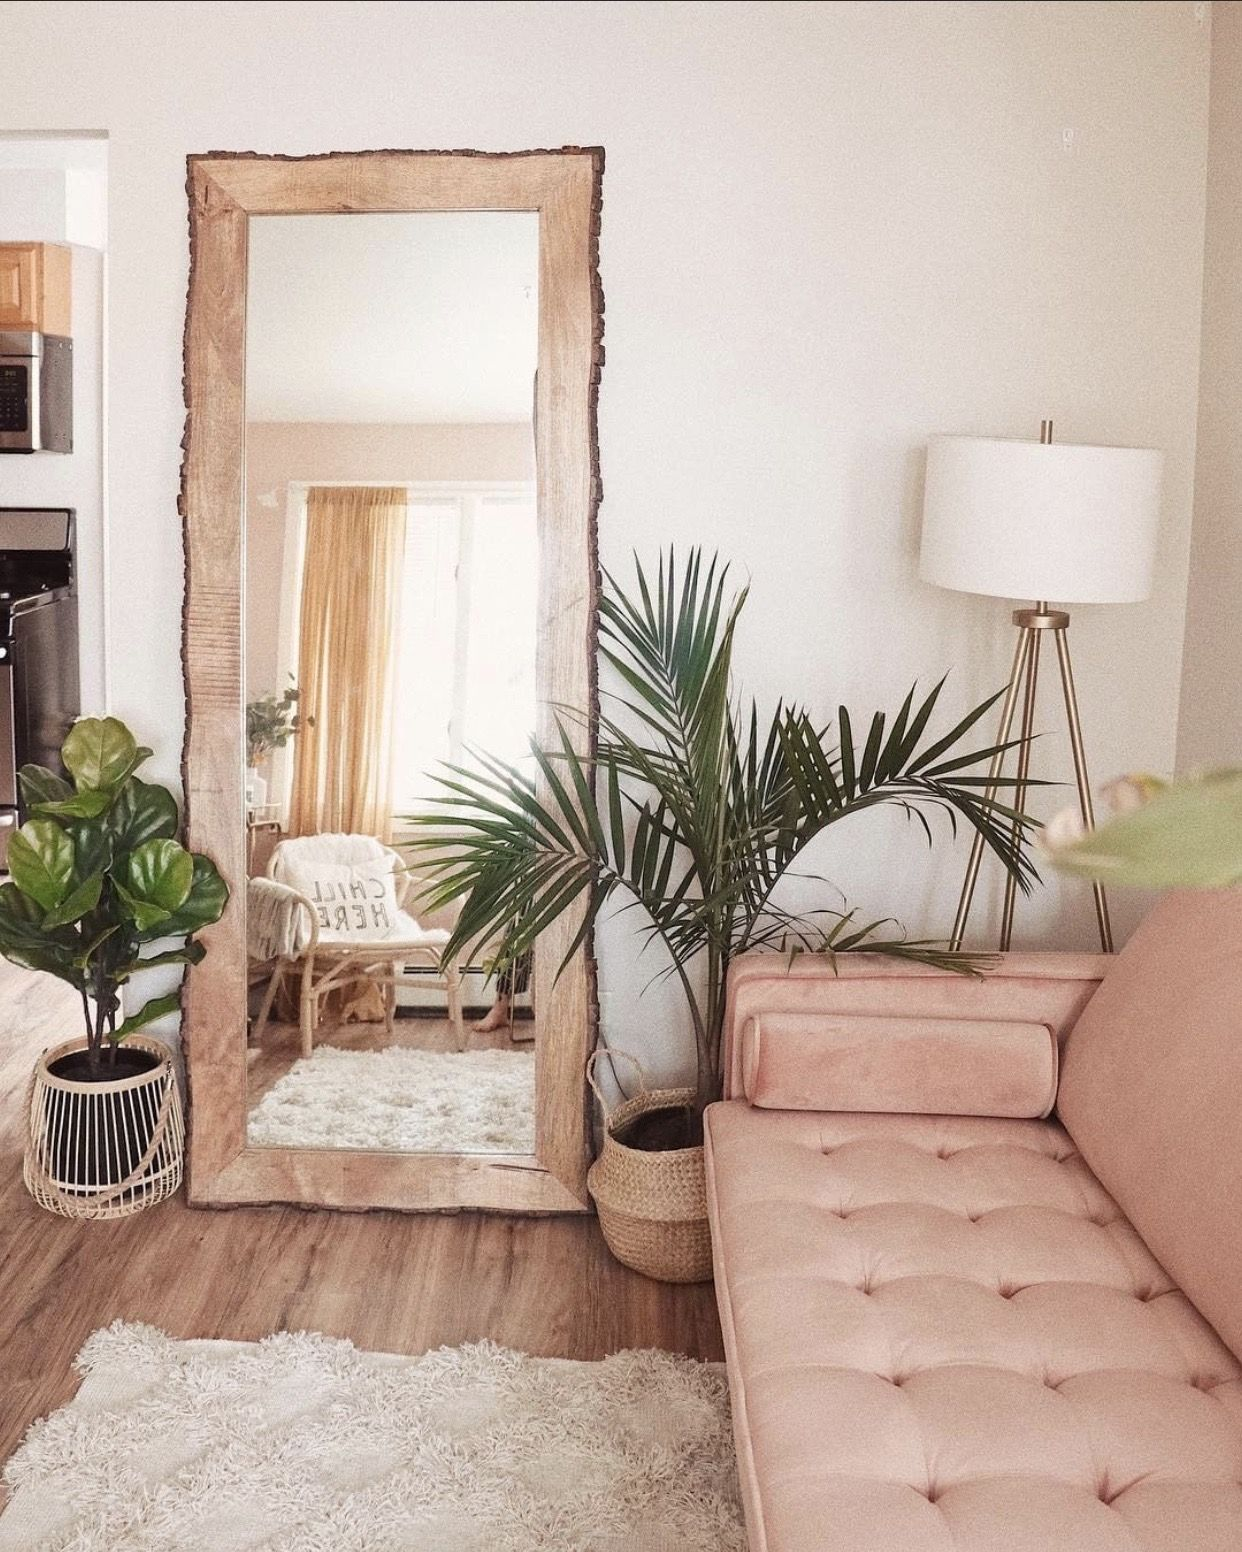 Pin by Lola on Home Decor in 2020 Pink living room